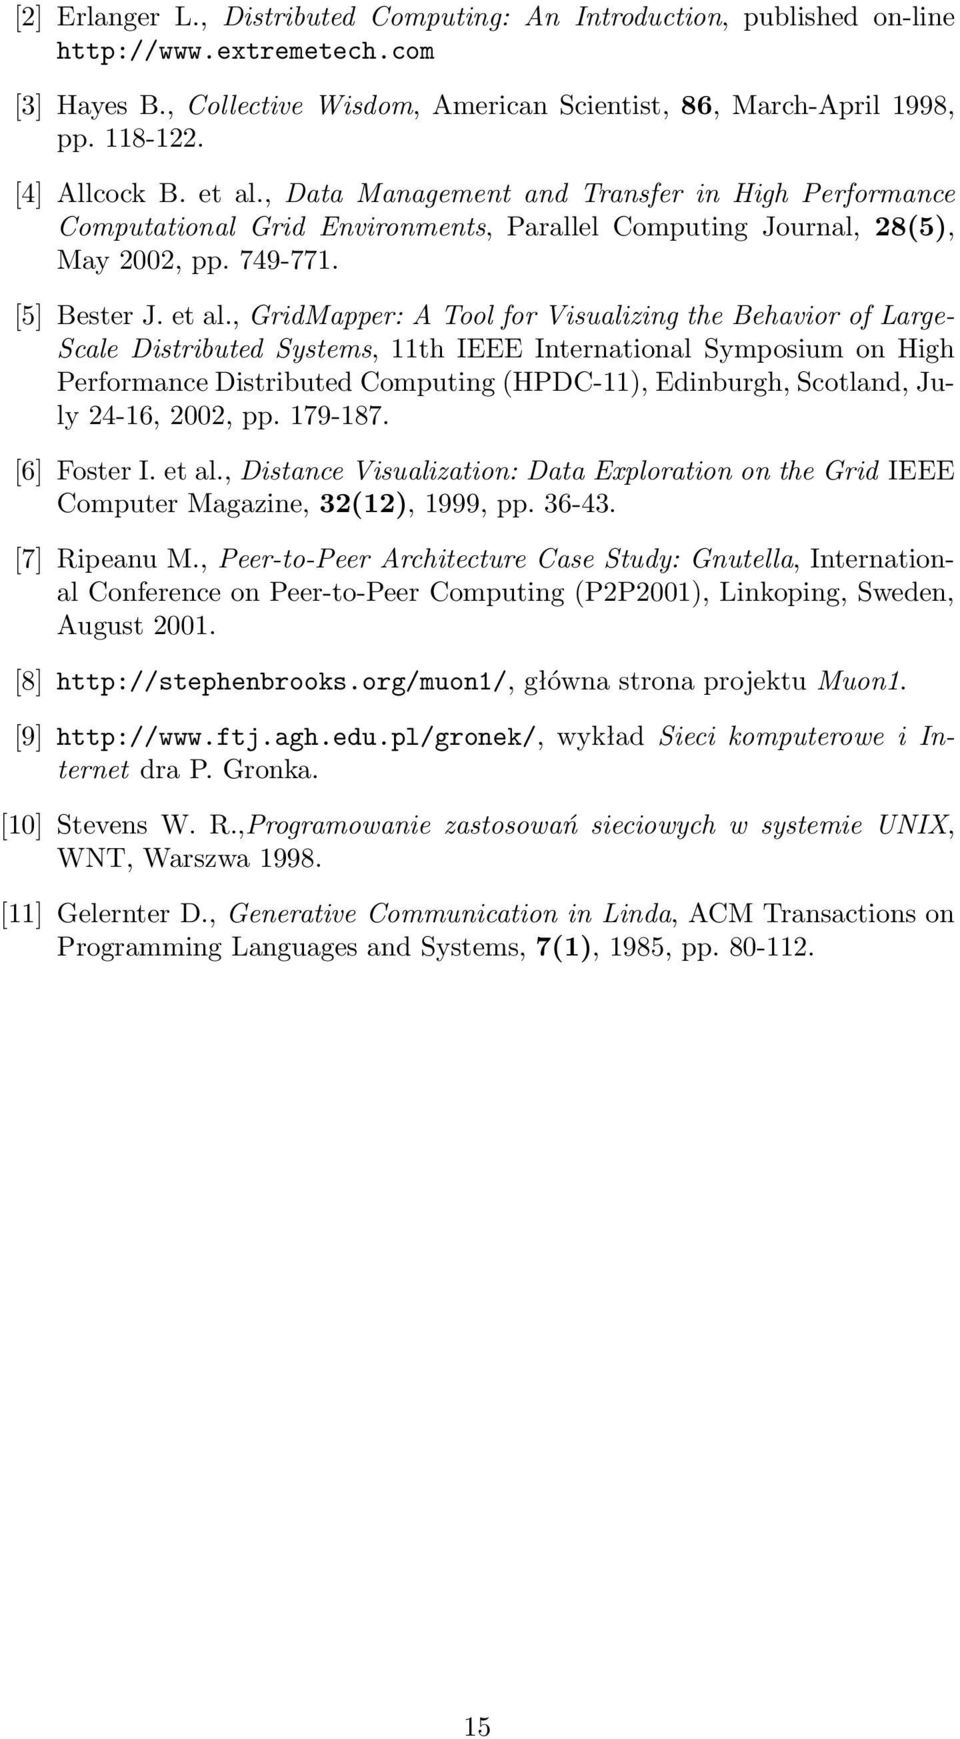 , Data Management and Transfer in High Performance Computational Grid Environments, Parallel Computing Journal, 28(5), May 2002, pp. 749-771. [5] Bester J. et al.